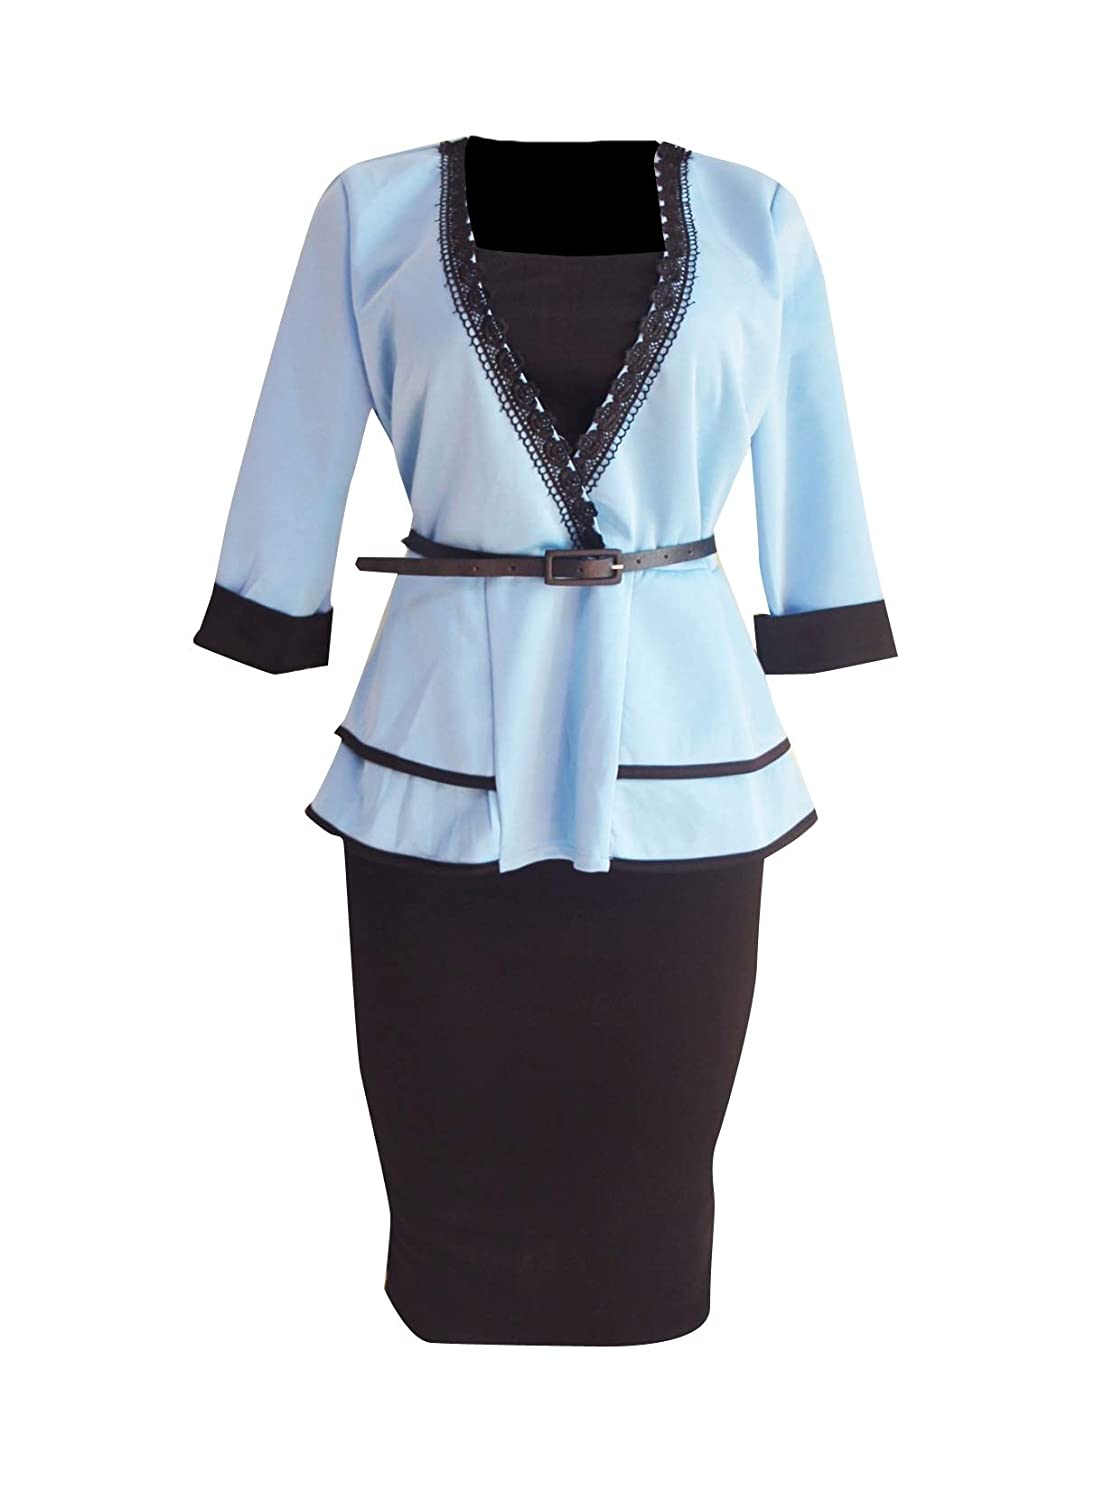 Tryist Womens Formal Business Flounced Office Shirt Jacket Skirt Suit